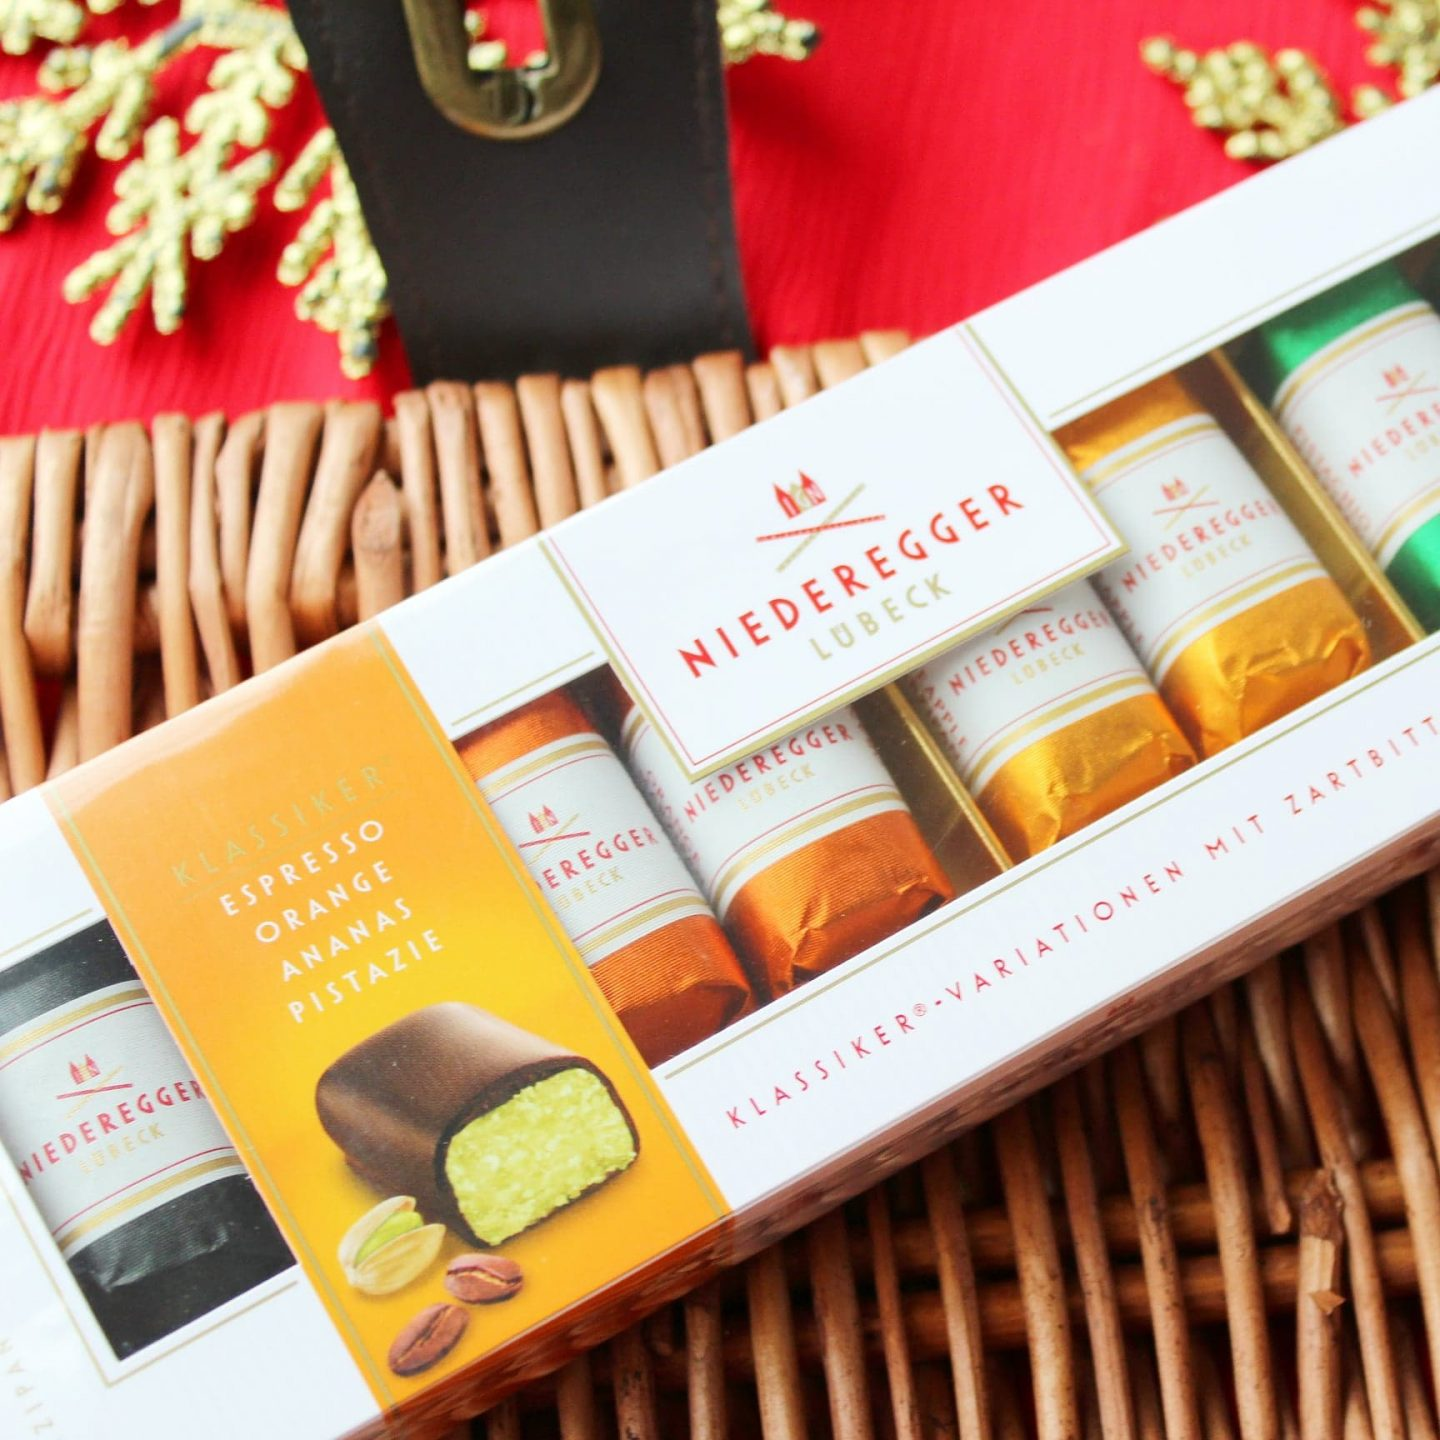 Niederegger Marzipan Christmas Hamper from Chocolates Direct